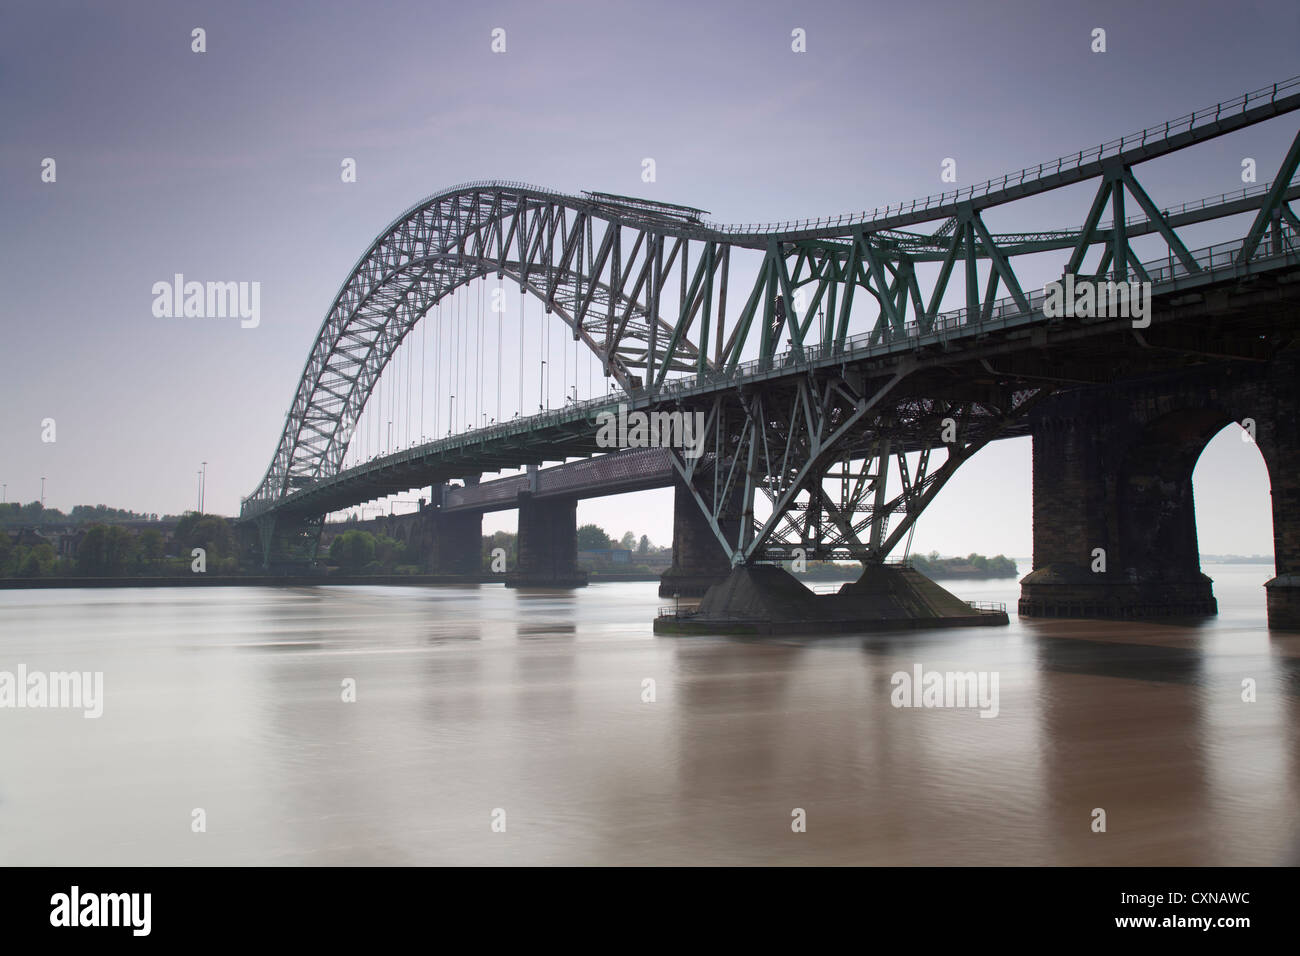 Long exposure day time image of the Runcorn Widnes bridge which spans the river Mersey and Manchester ship canal. - Stock Image